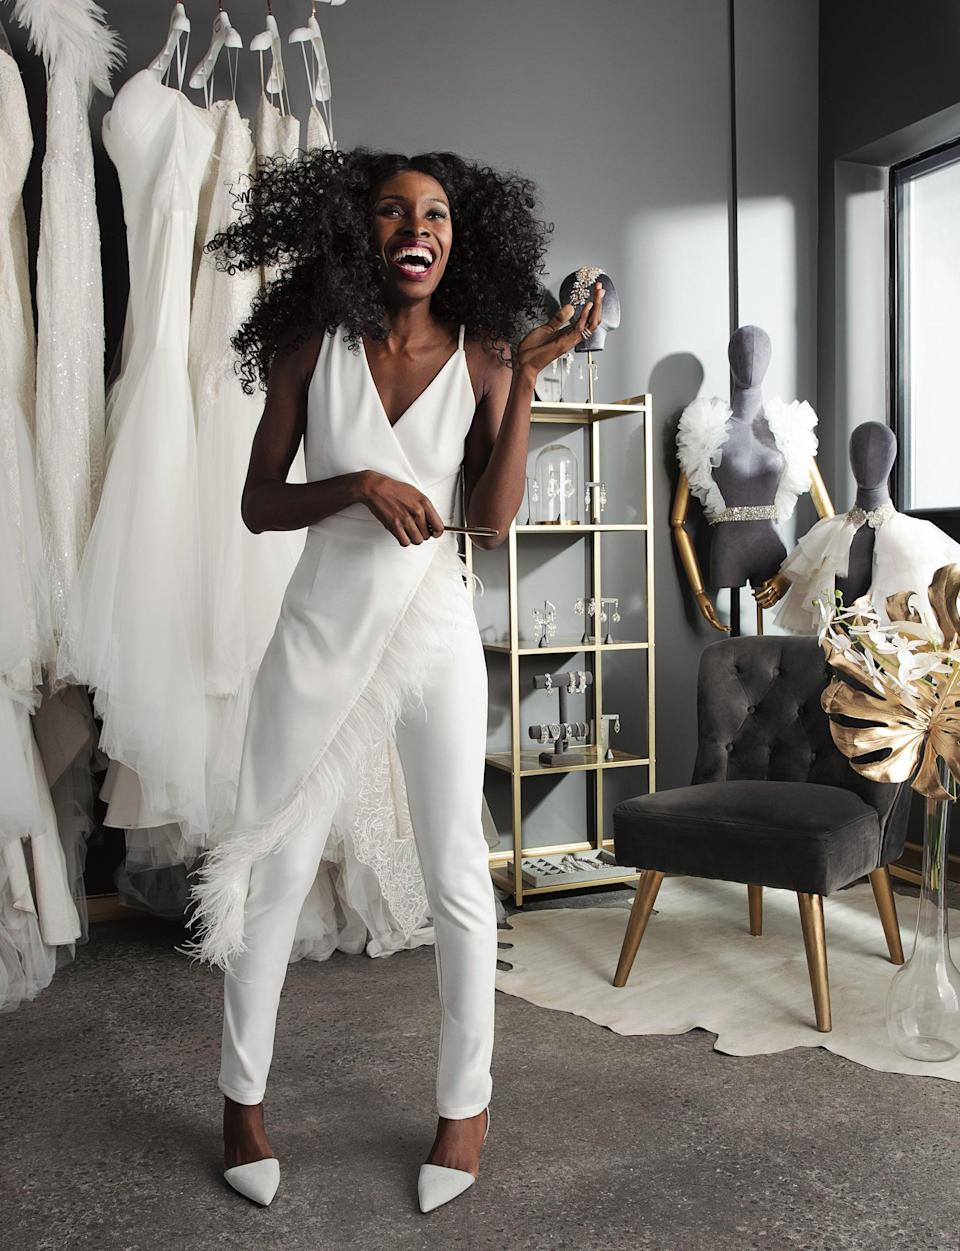 """<ul> <li><strong>On being recognized only as a Black designer:</strong> """"When <a href=""""https://pantorabridal.com/"""" class=""""link rapid-noclick-resp"""" rel=""""nofollow noopener"""" target=""""_blank"""" data-ylk=""""slk:Pantora"""">Pantora</a> does get recognition, it's often on a 'Black Designers' list. I think a lot of Black designers experience that. Our talent exists year-round, but when we get recognition it's only on 'Black Designers to Know' lists. But if we are talented, and you truly want to give us the recognition, then it should come at any point in time, not just when you want to specifically acknowledge Black talent.""""</li> <li><strong>On <a class=""""link rapid-noclick-resp"""" href=""""https://www.popsugar.com/Wedding"""" rel=""""nofollow noopener"""" target=""""_blank"""" data-ylk=""""slk:wedding"""">wedding</a> gowns being designed for Black women:</strong> """"I think that Black women have such big spending power. The fact that we aren't acknowledging them in fashion does not make any sense. It just doesn't. I would love for size charts to make sense for different body types. I would love to see designers and brands pay attention to skin tones. Pantora is not the first brand to create mesh that matches skin tones - and we would never claim to be - but we made a point of creating a line of mesh called Forgotten Skin Tones that addresses as many skin tones as possible, so Black women can get the illusion look that's trending everywhere. I would love to see other brands do that.""""</li> </ul>"""